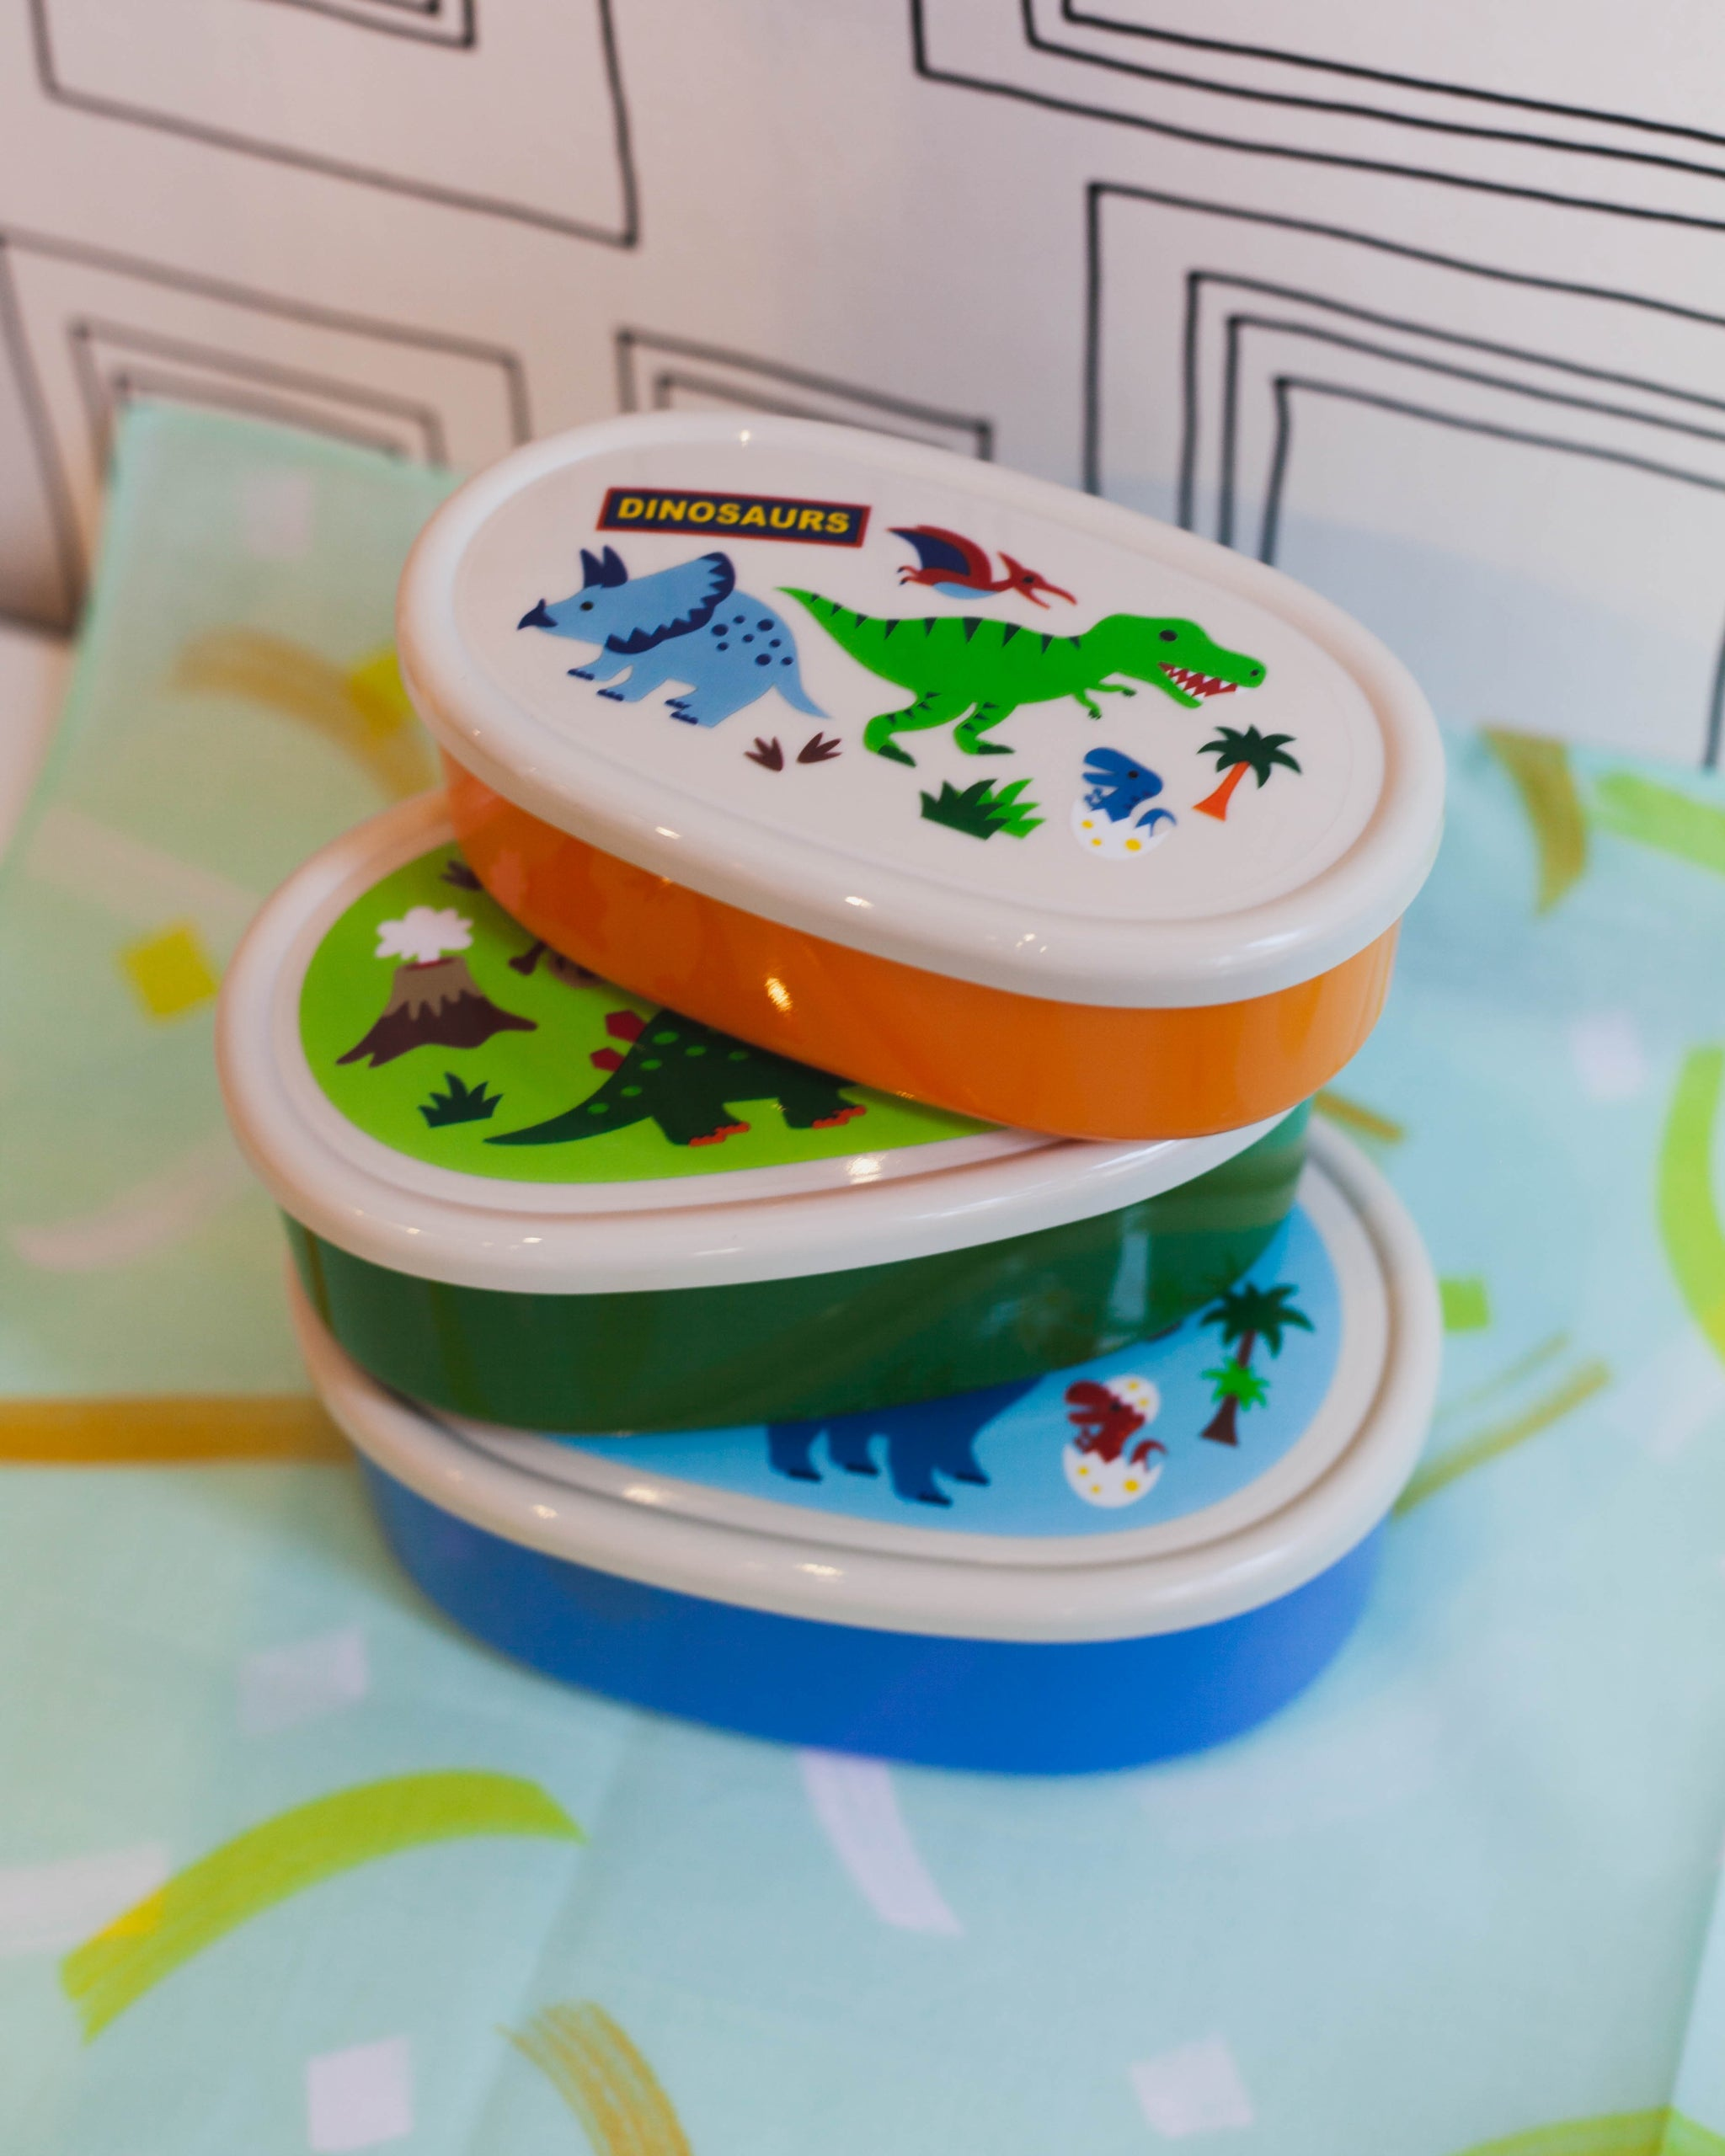 Dinosaurs Lunch Box Three Piece Set by Skater - Bento&co Japanese Bento Lunch Boxes and Kitchenware Specialists